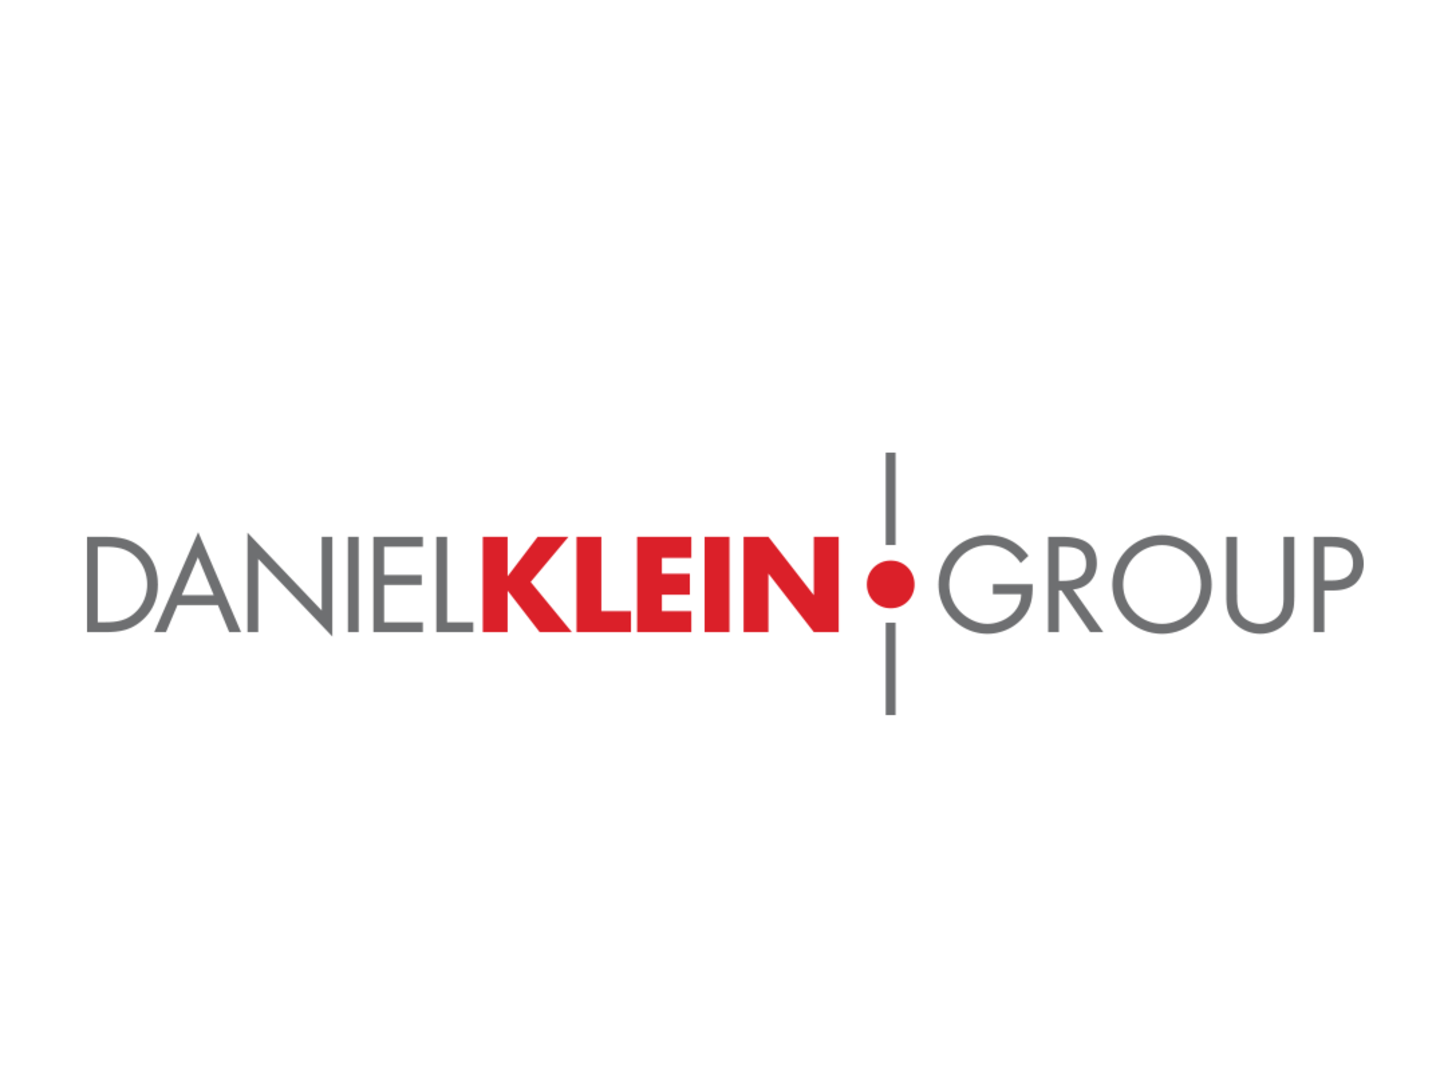 DANIEL KLEIN GROUP